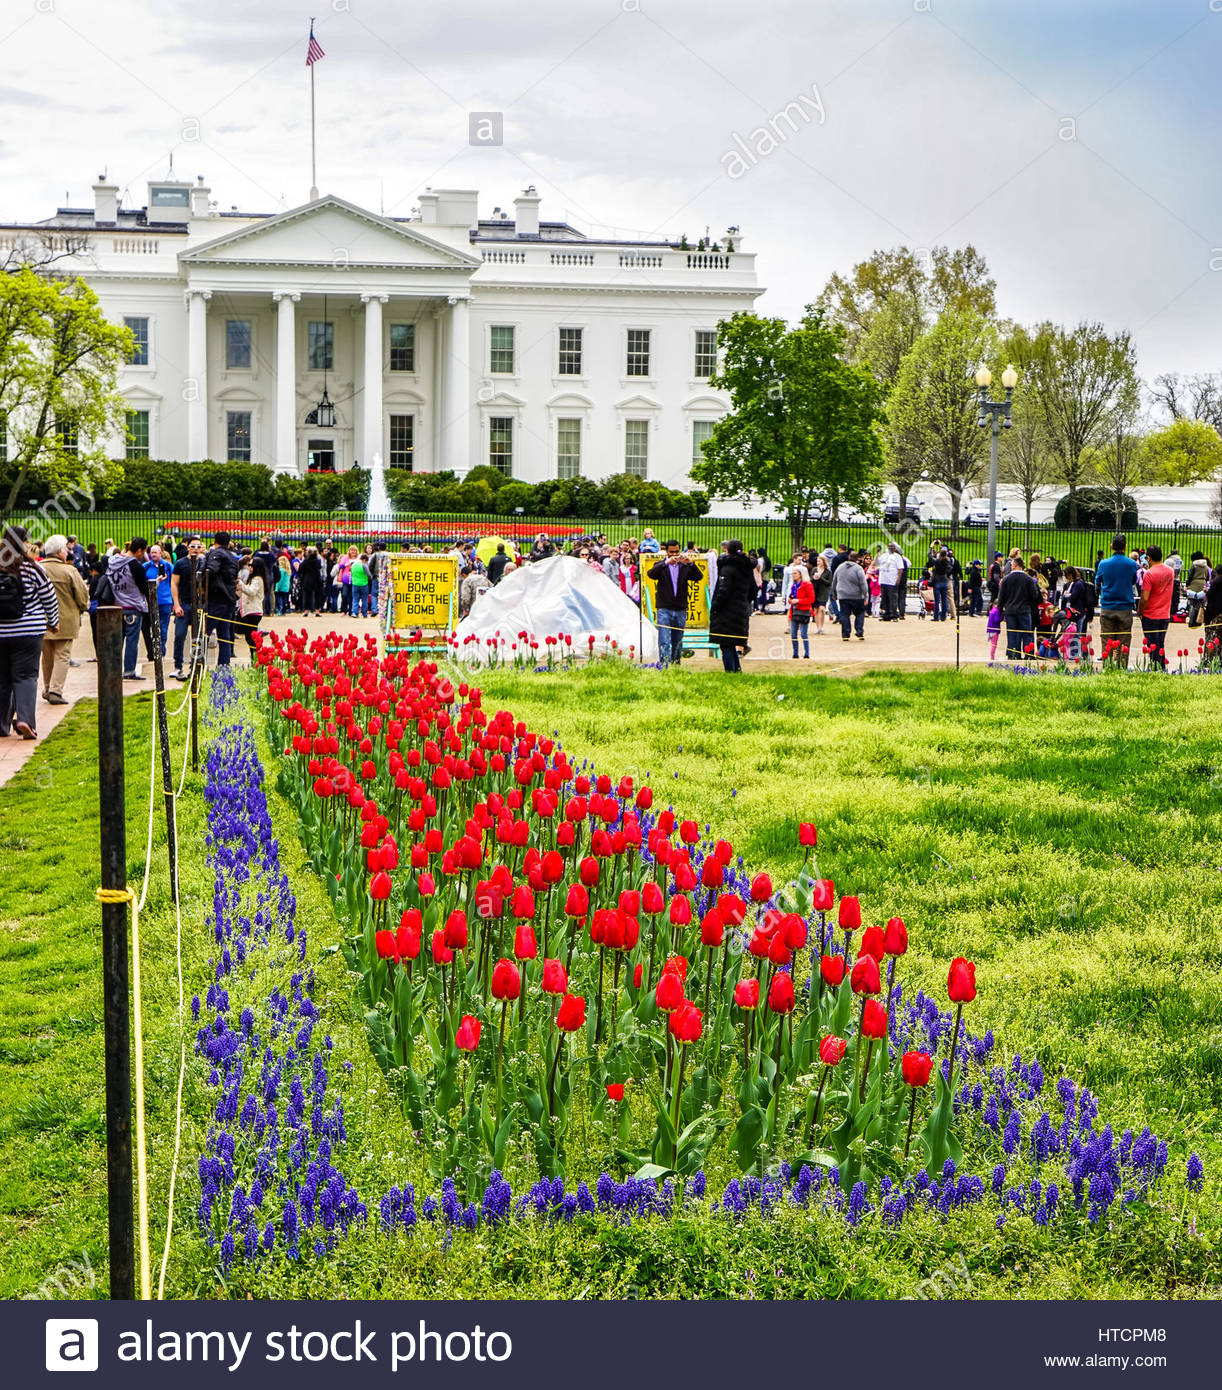 White house flowers manly gallery flower decoration ideas white house flowers manly image collections flower decoration ideas white house flowers manly image collections flower mightylinksfo